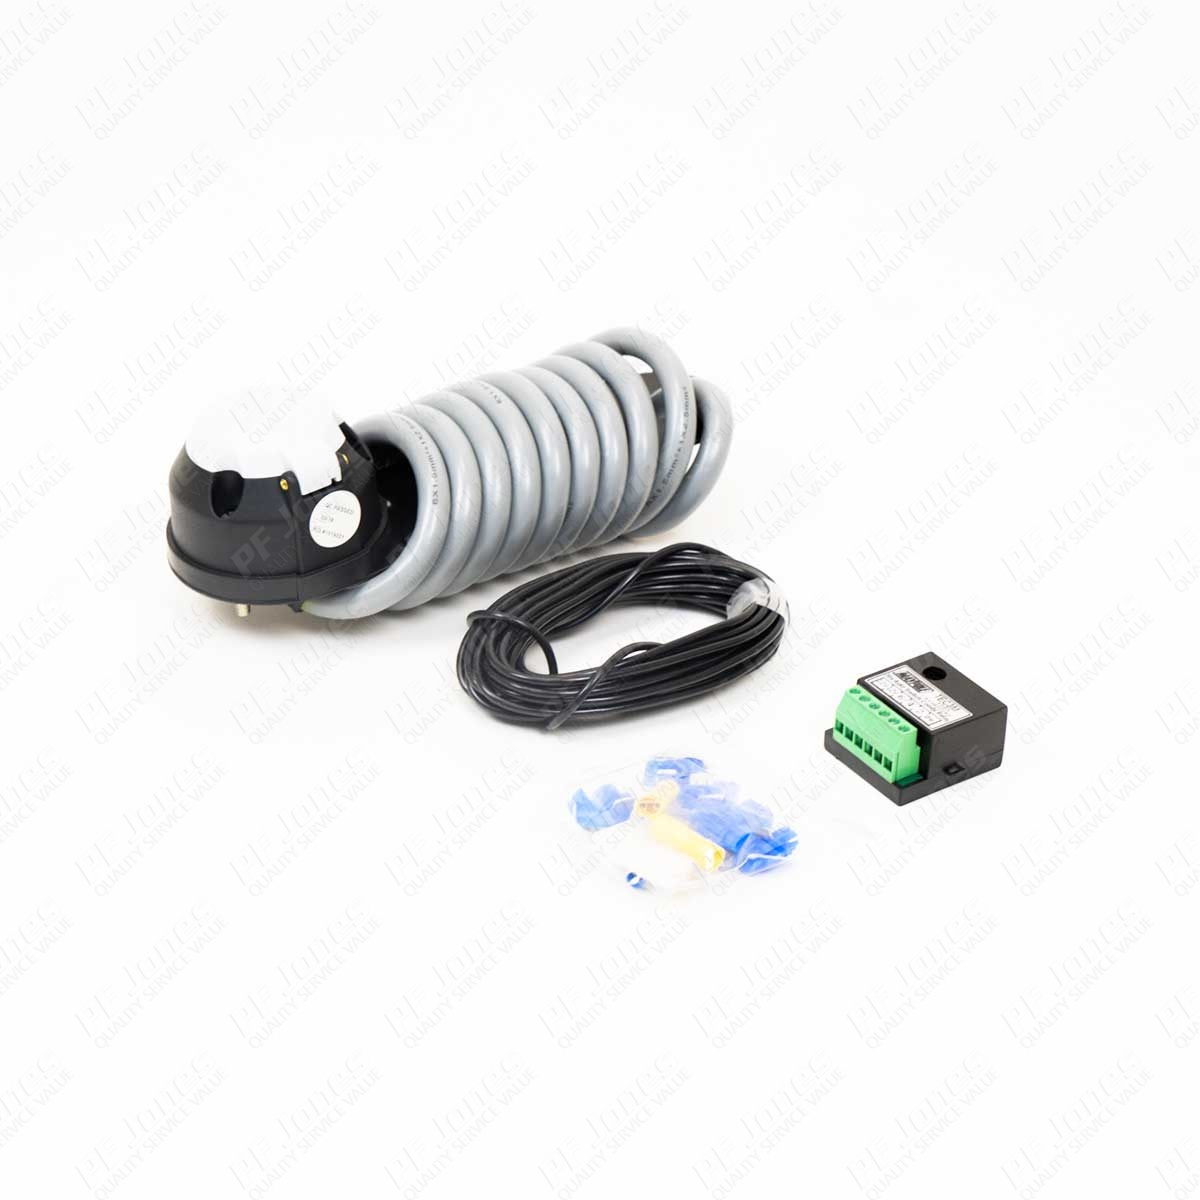 Towbar 12s and charge relay kit